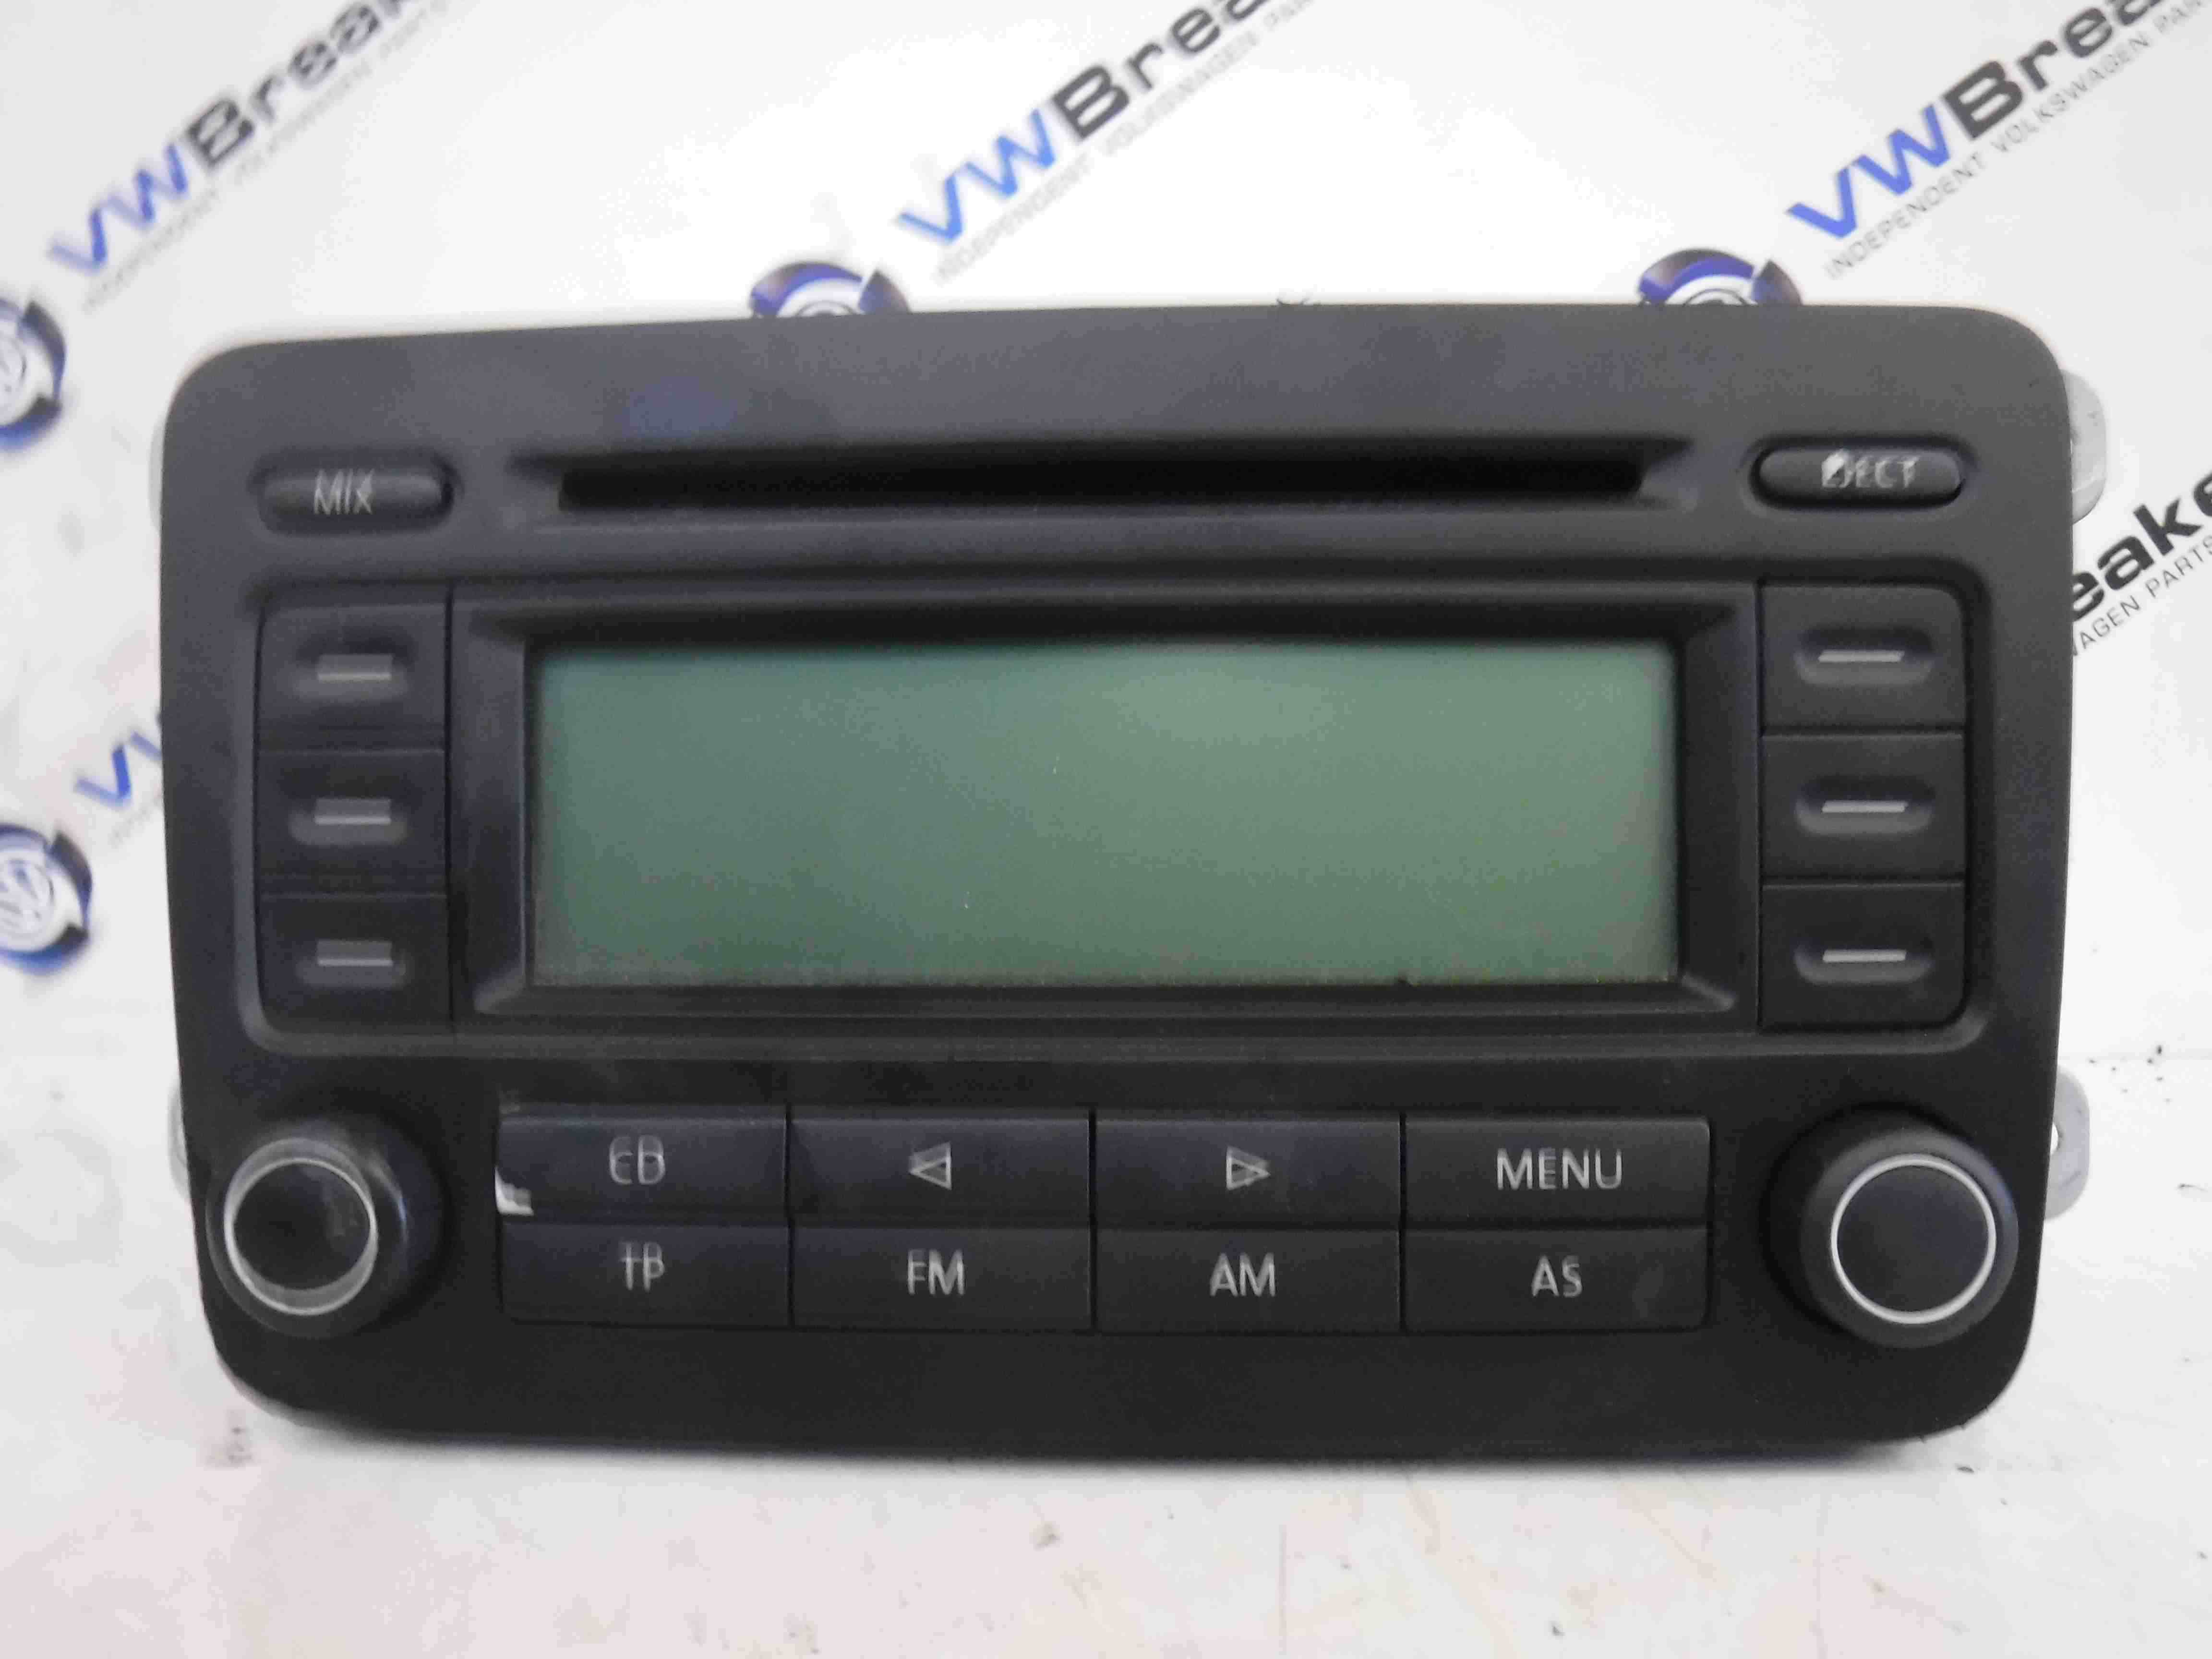 Volkswagen Golf MK5 2003-2009 Radio Cd Player Head Unit 1k0035186J 1K0035186G